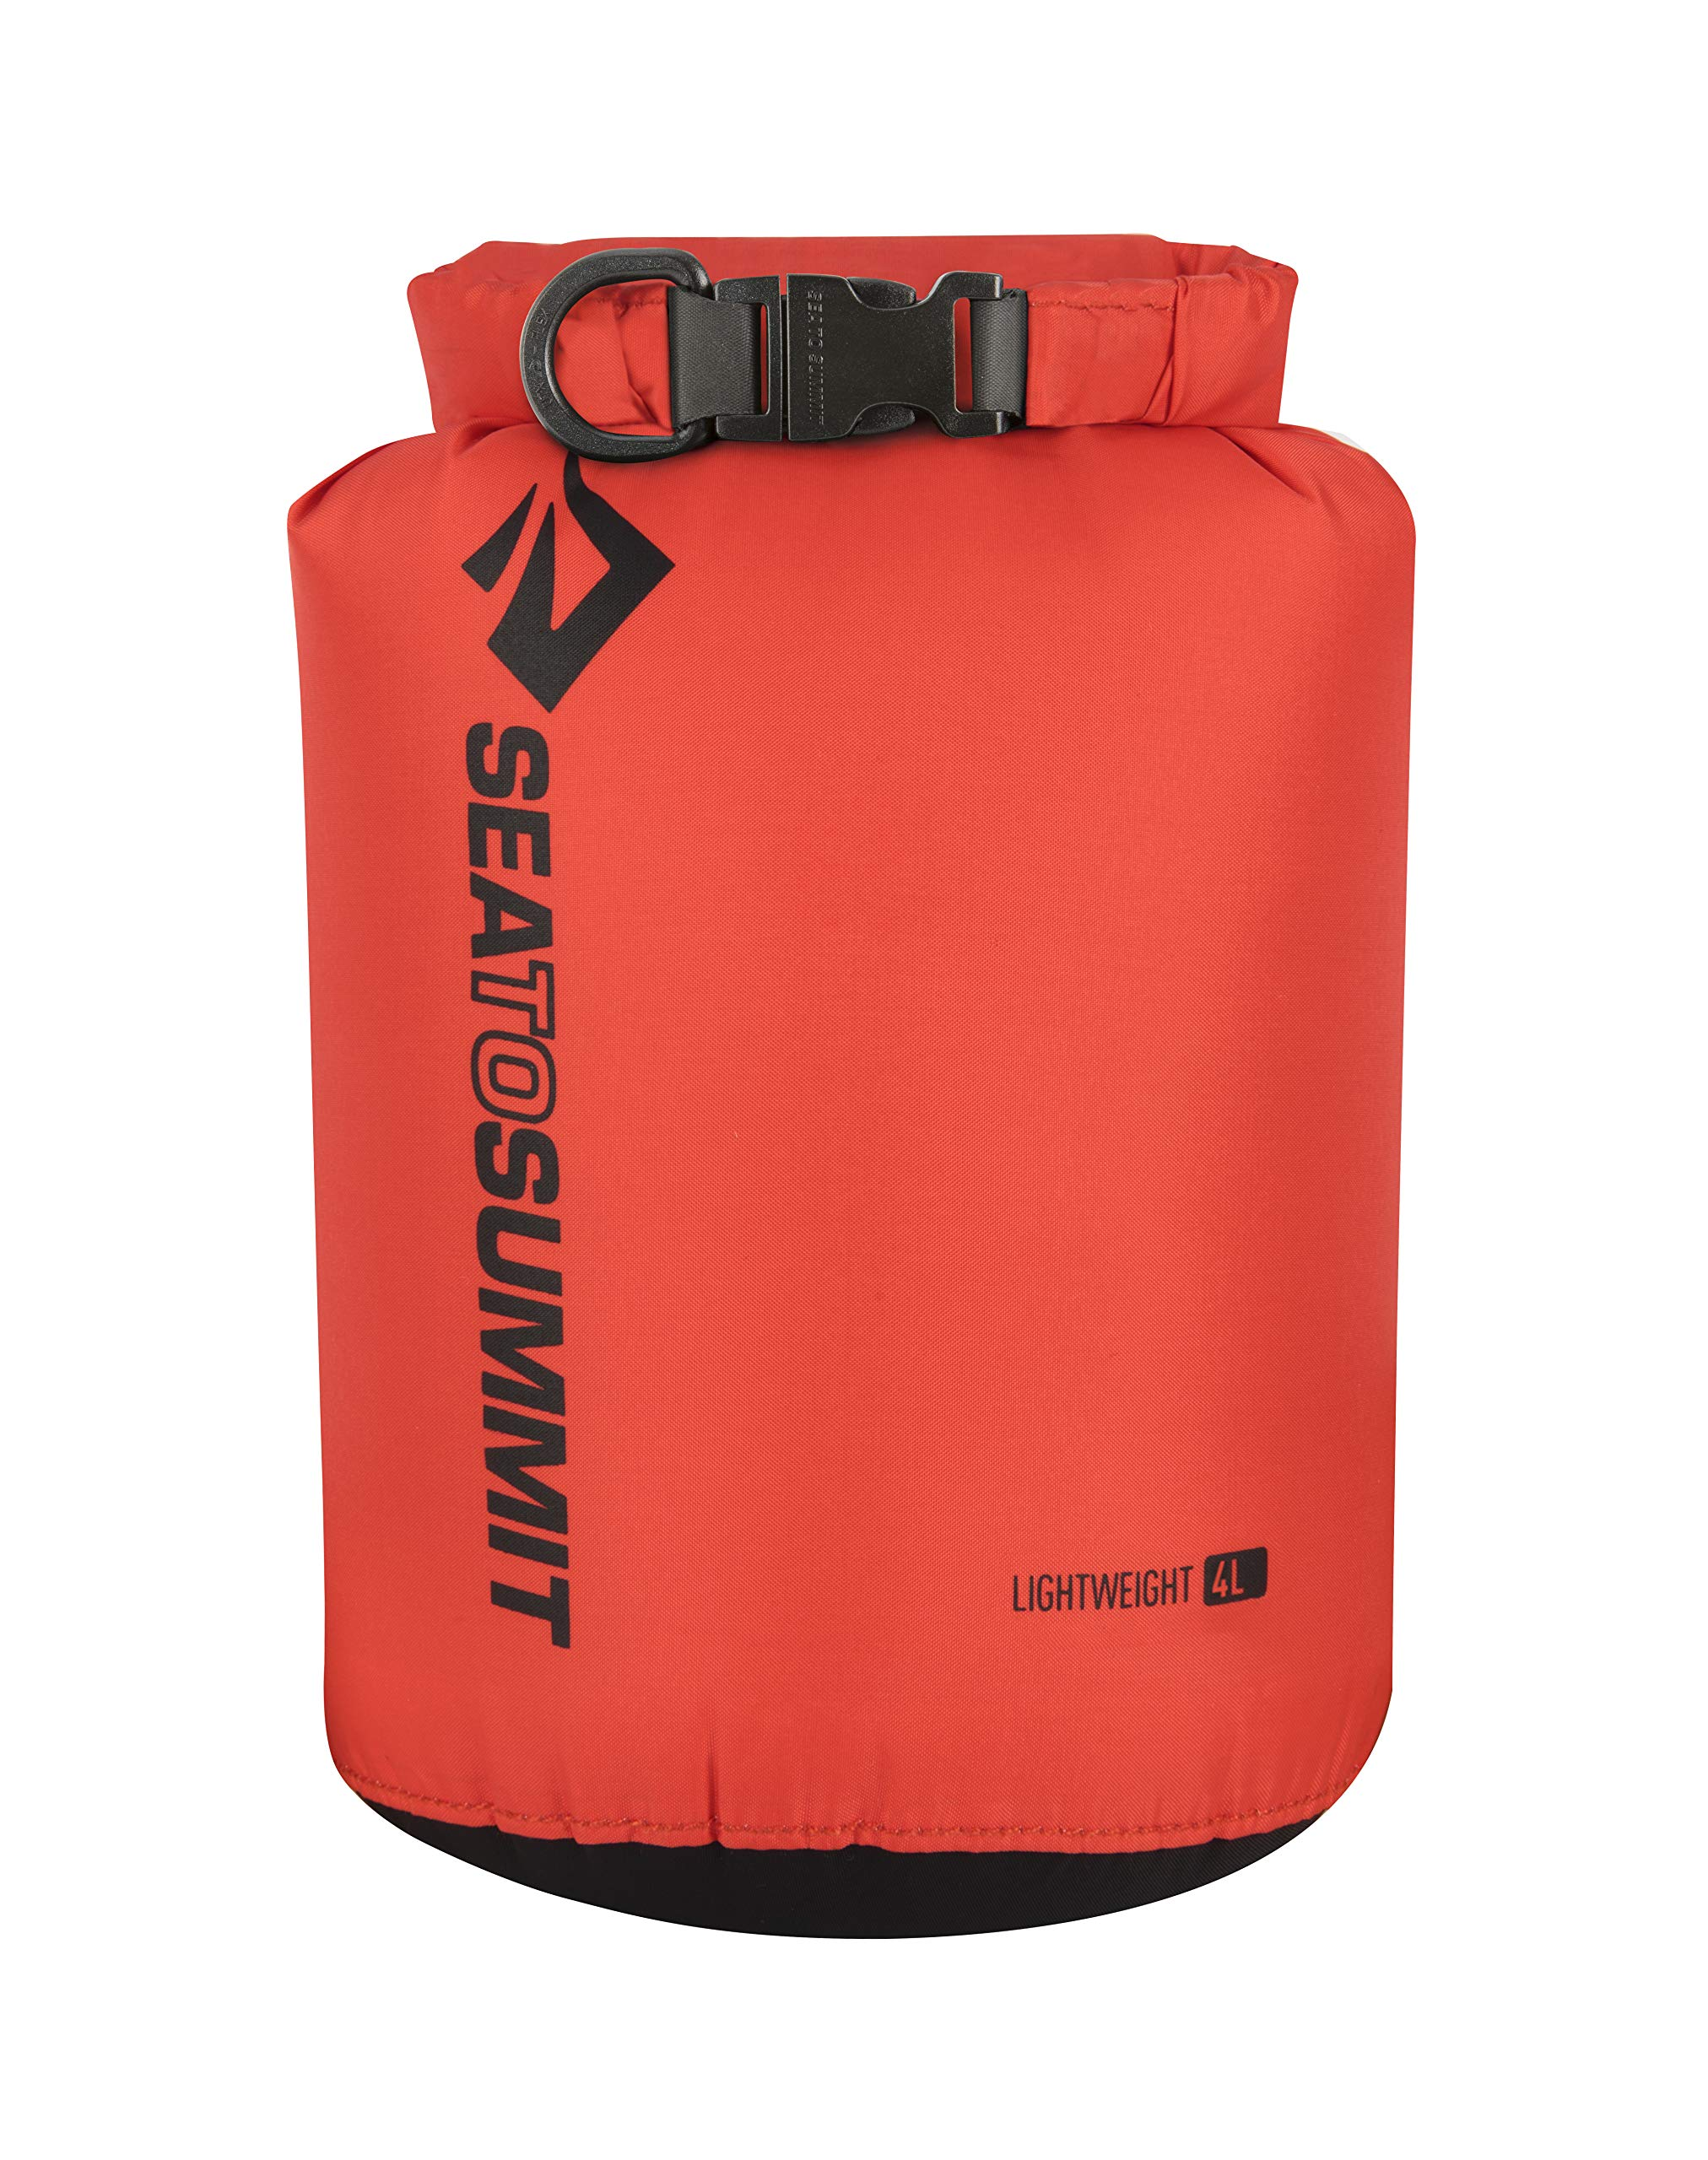 Sea to Summit Lightweight Dry Sack,Red,Small-4-Liter by Sea to Summit